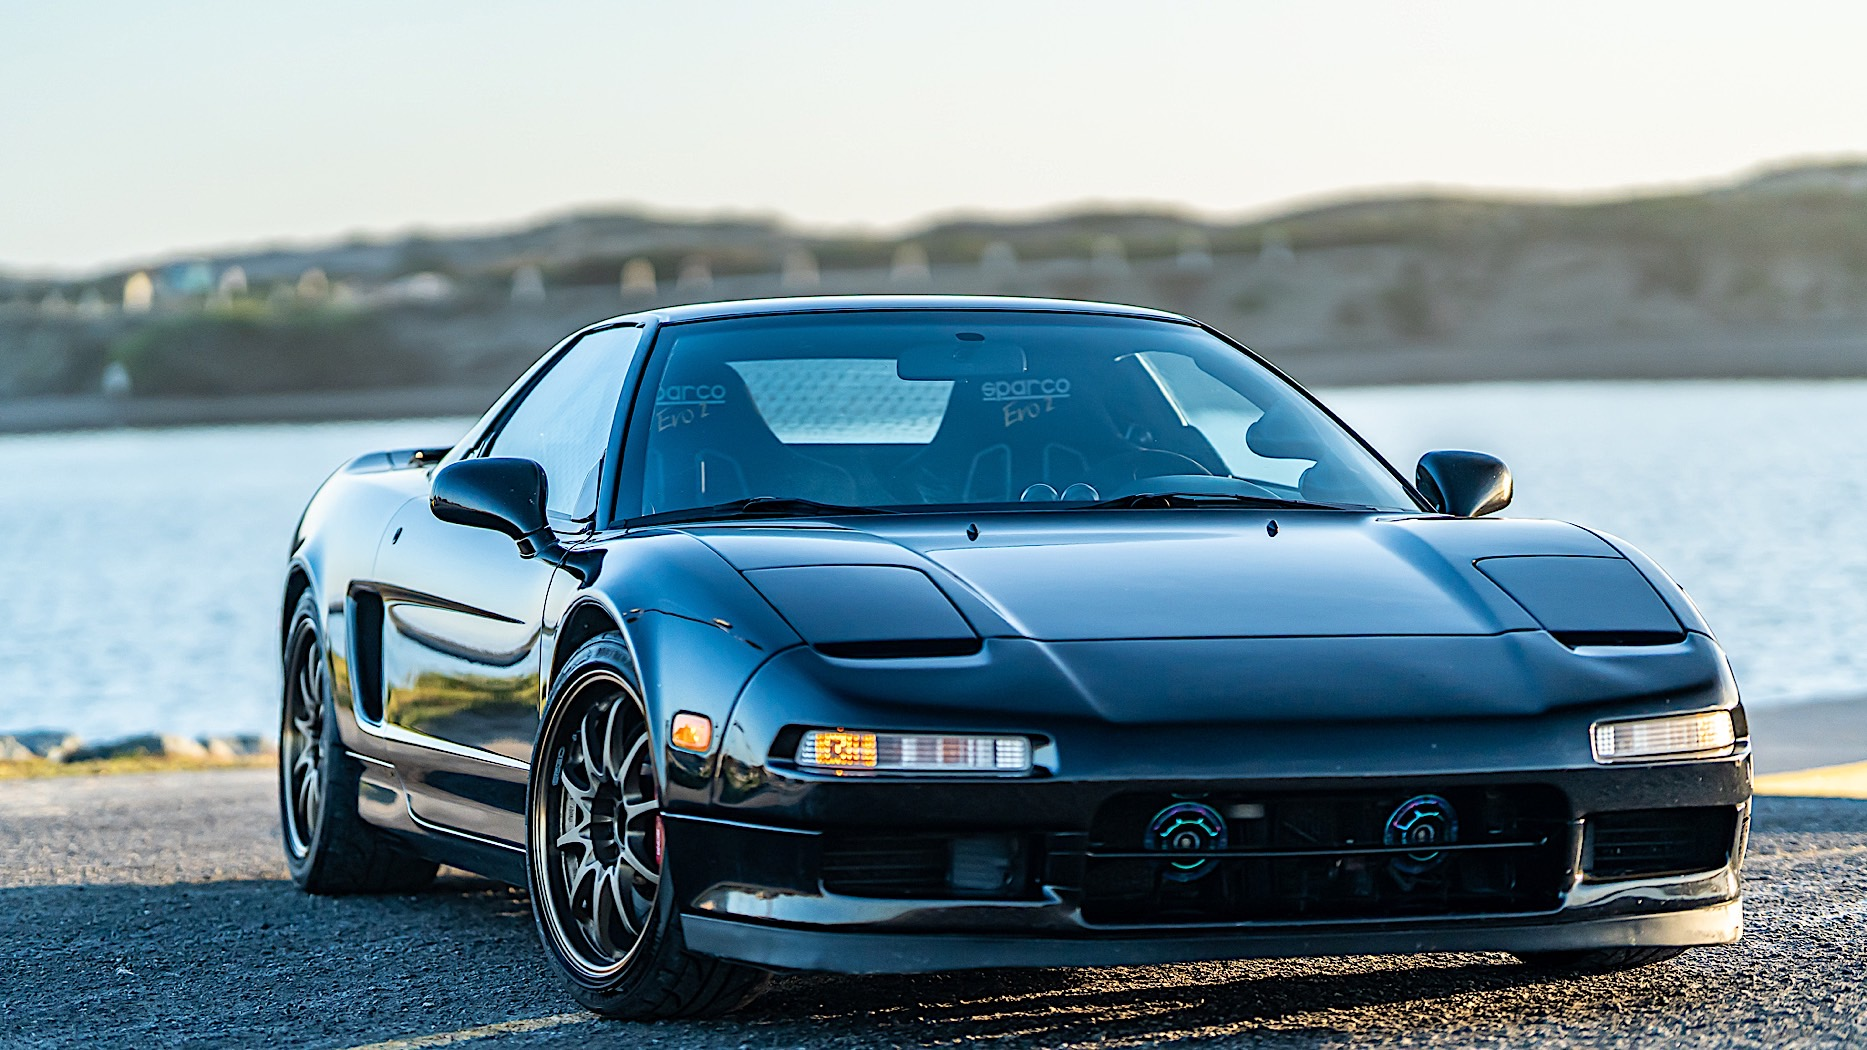 First Gen Acura Nsx Is An All Black Blast From The Past Autoevolution